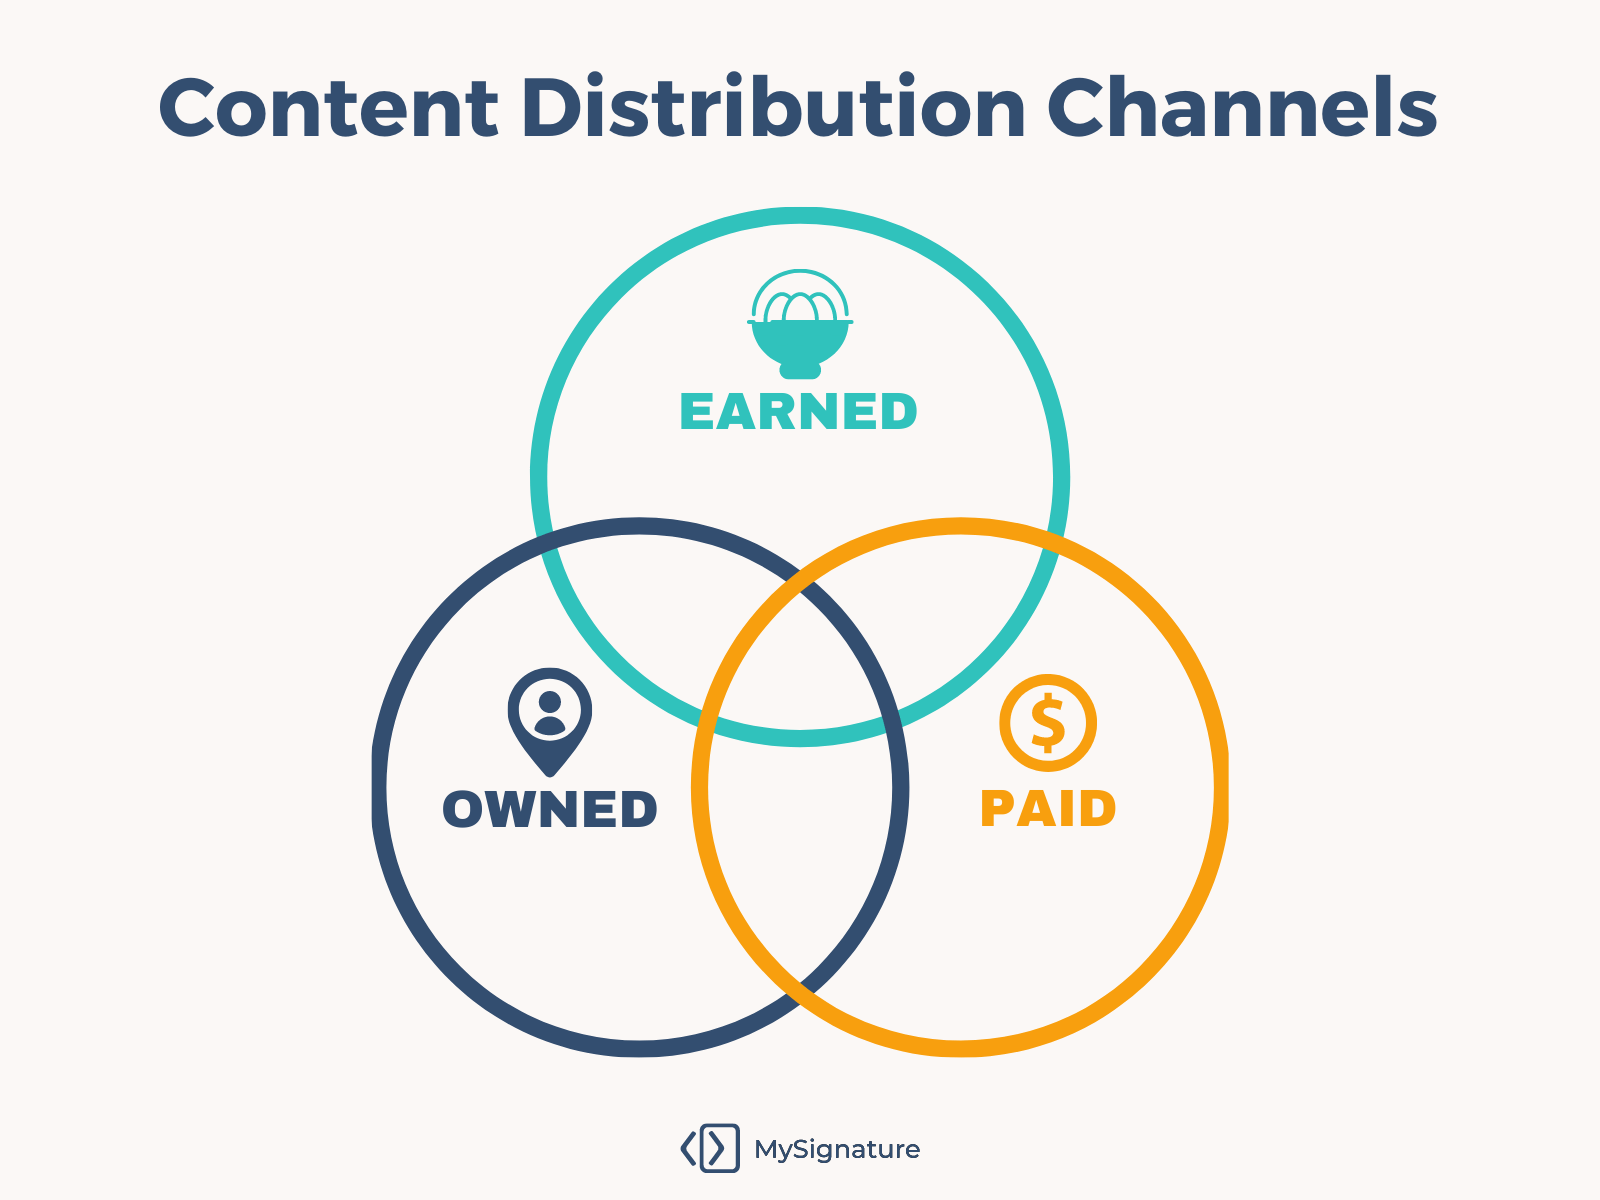 Content distribution channels